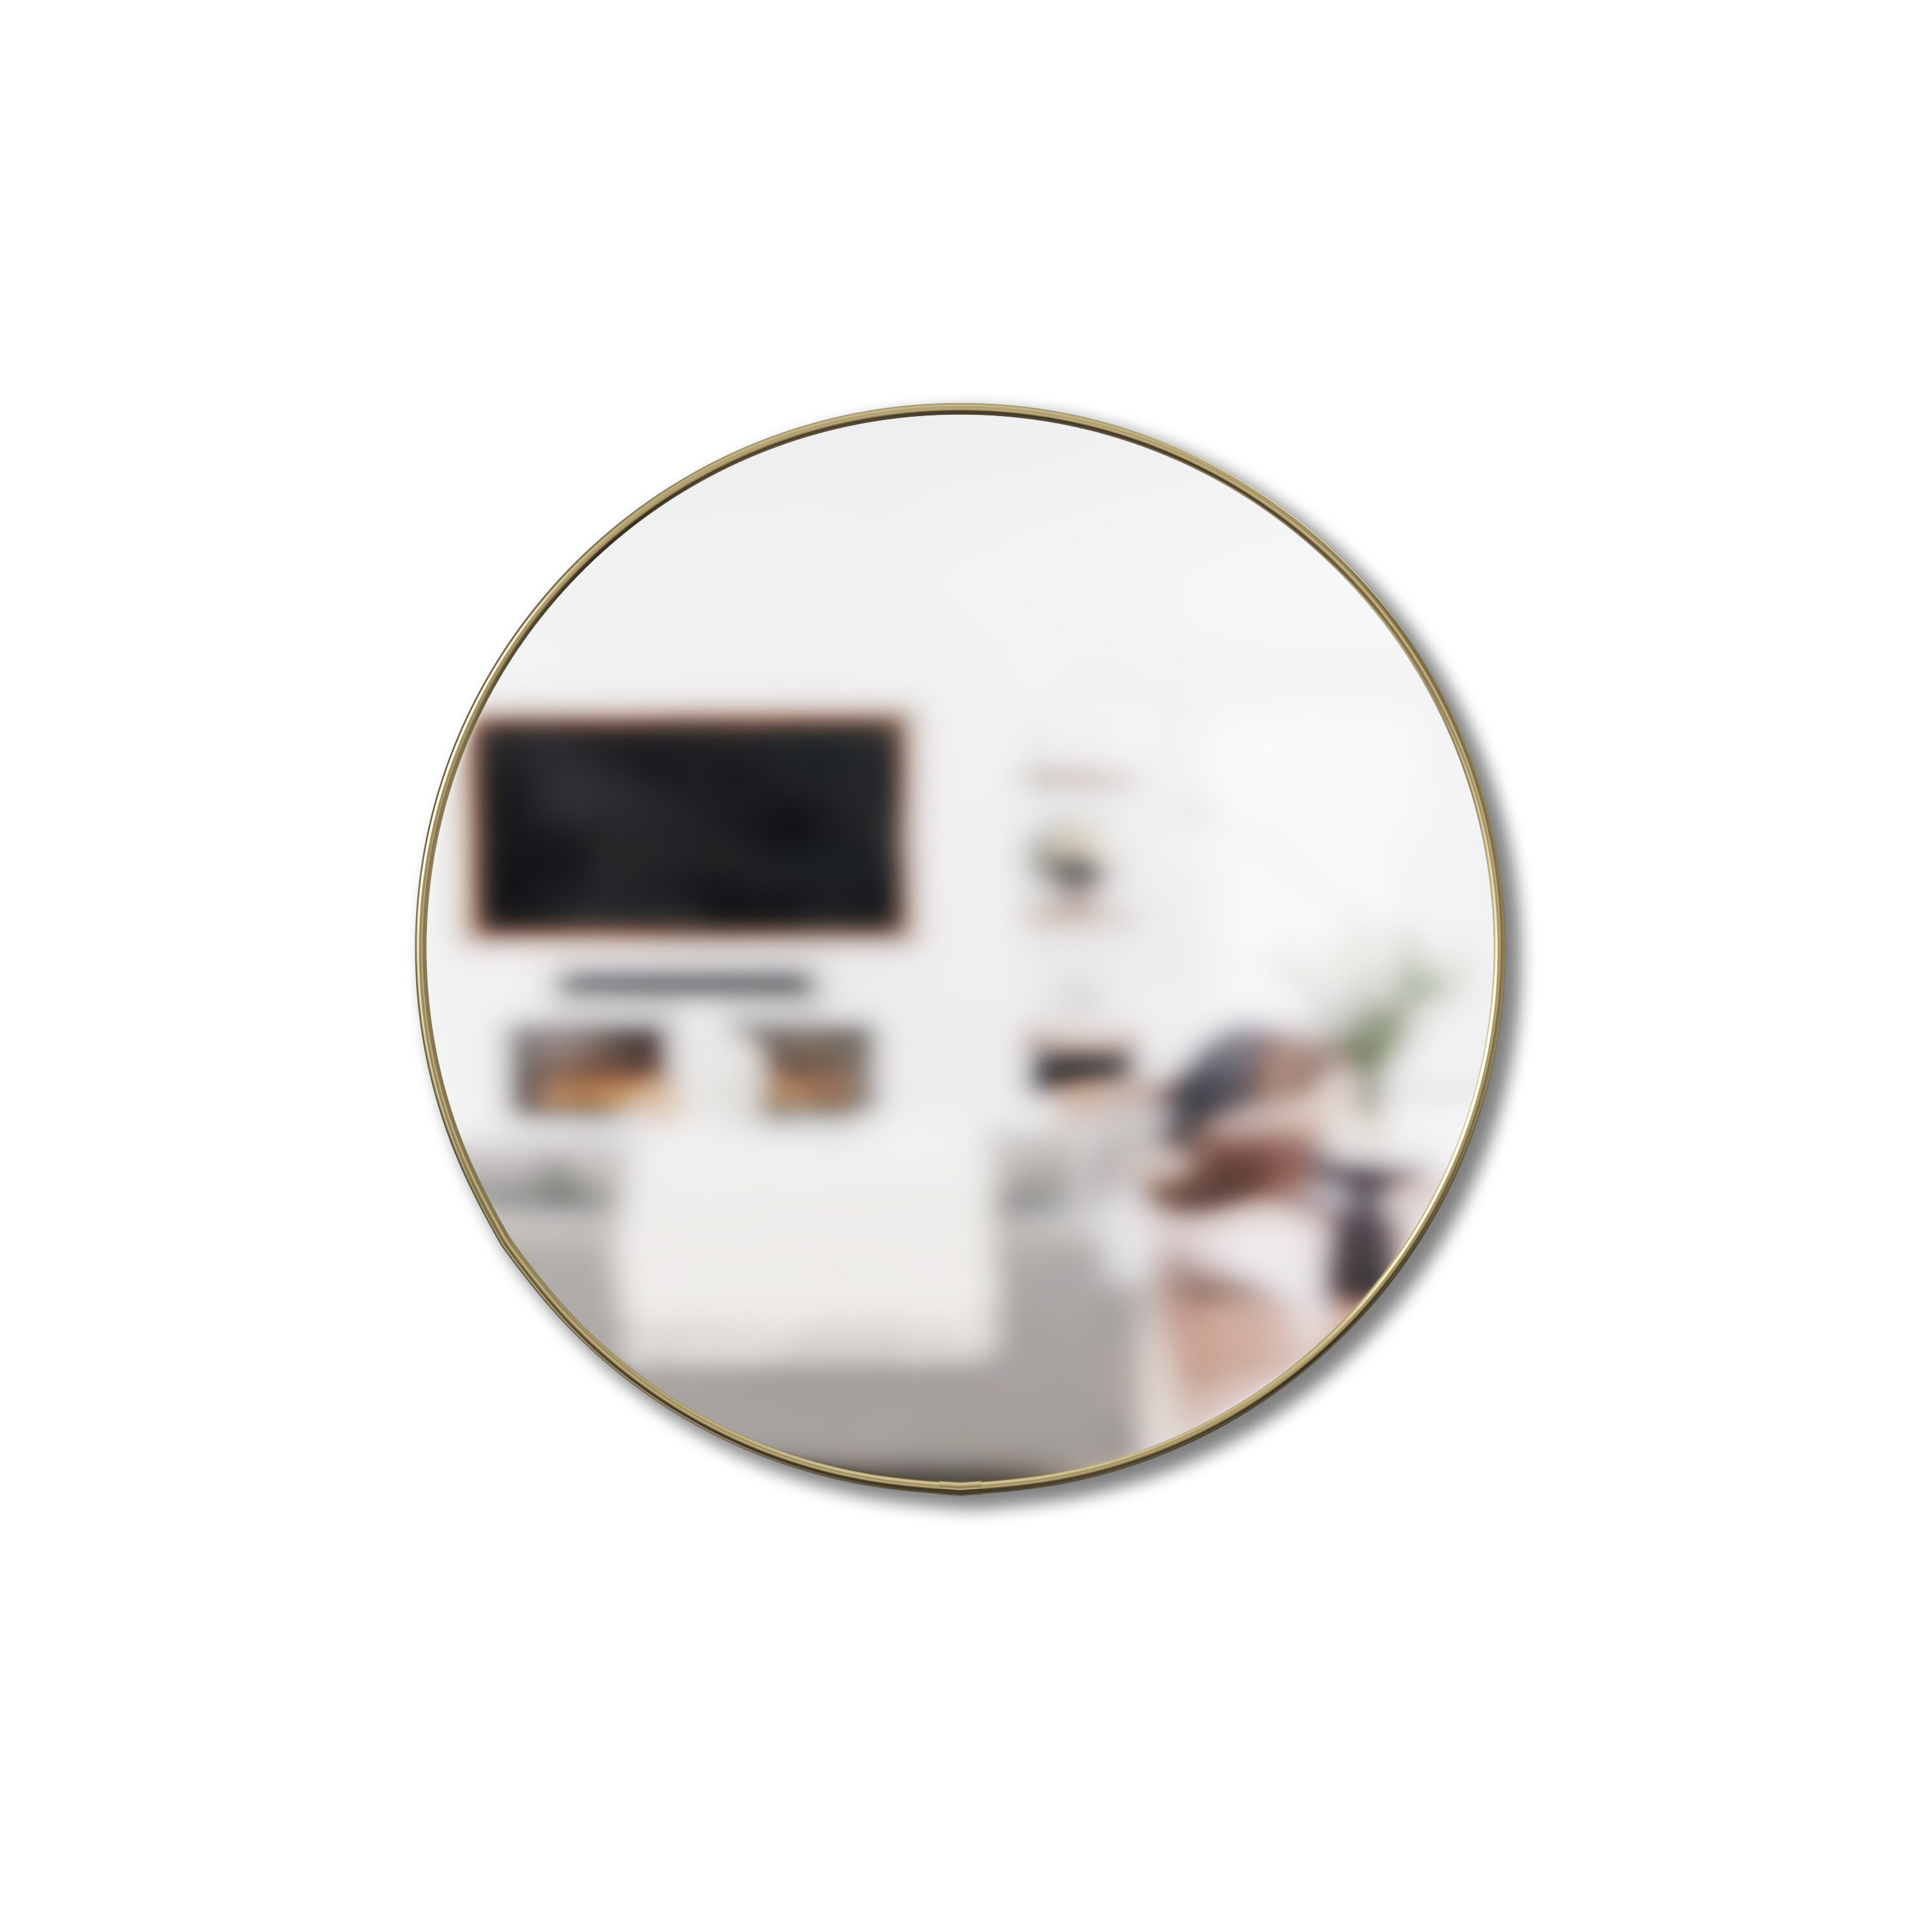 Horizontal And Vertical Round Wall Mirrors You Ll Love In 2020 Wayfair